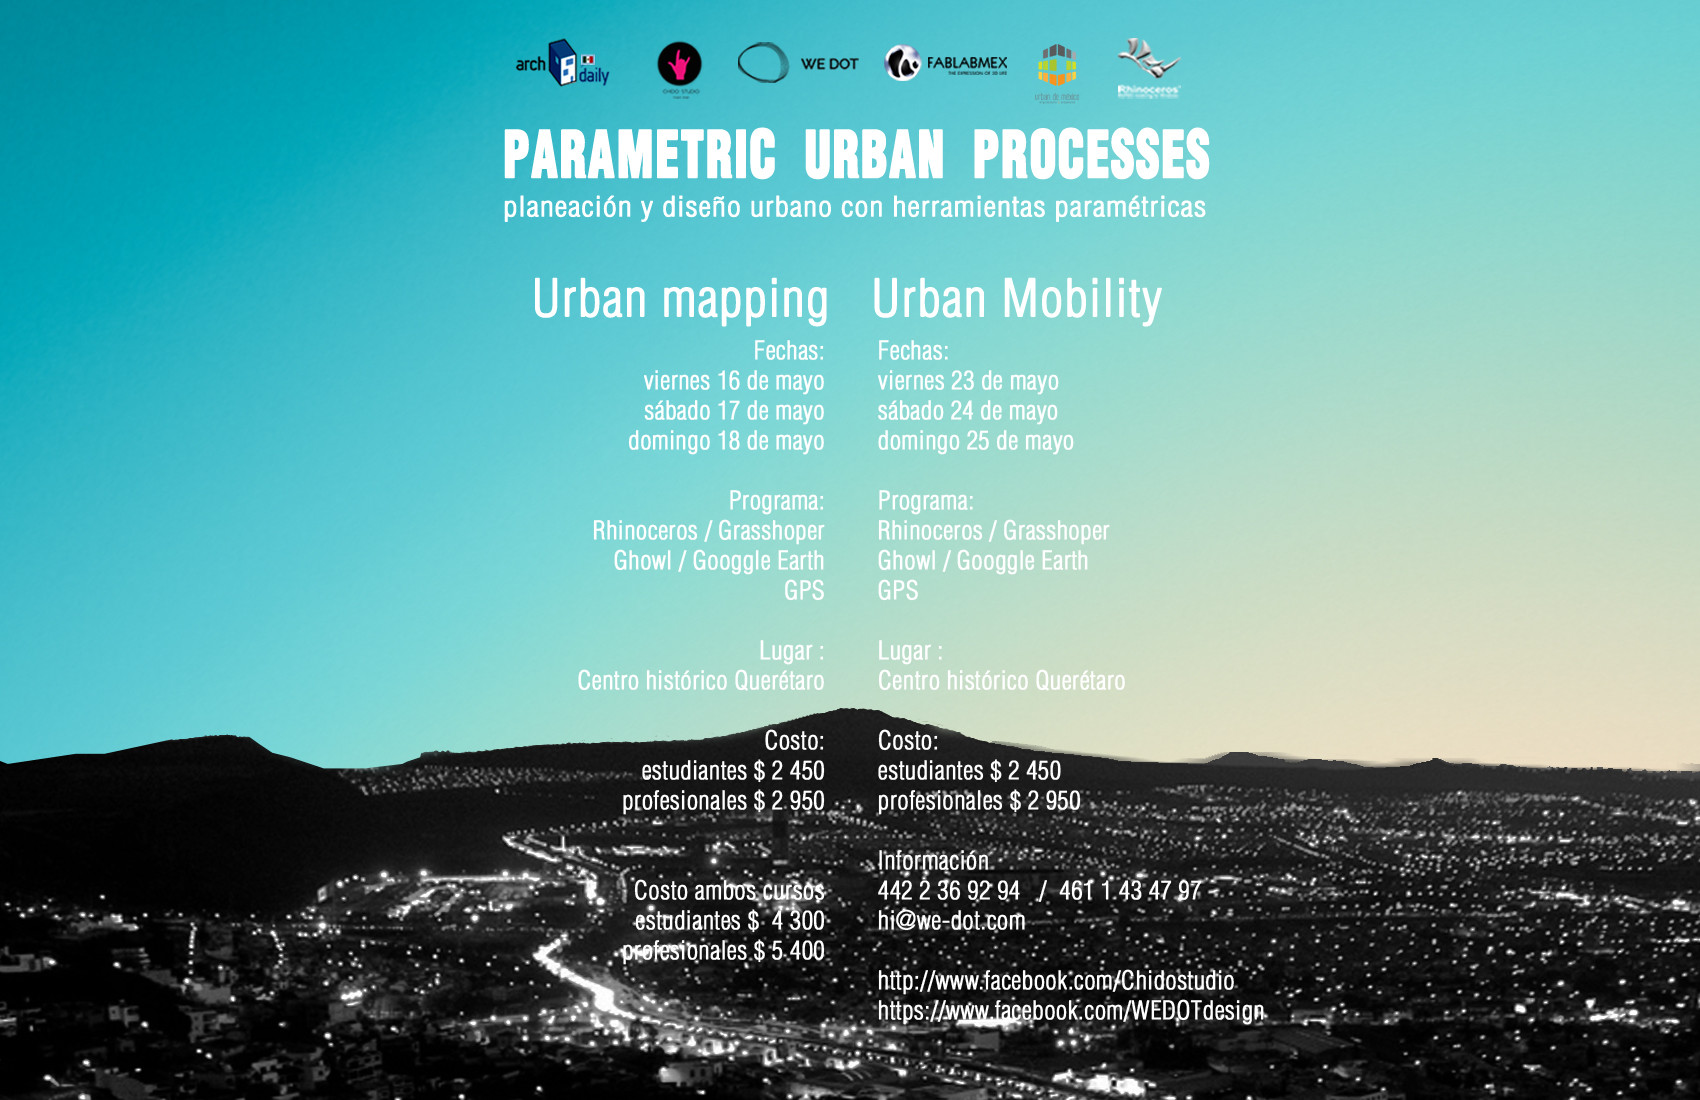 Workshop Parametric Urban Processes / Chido Studio